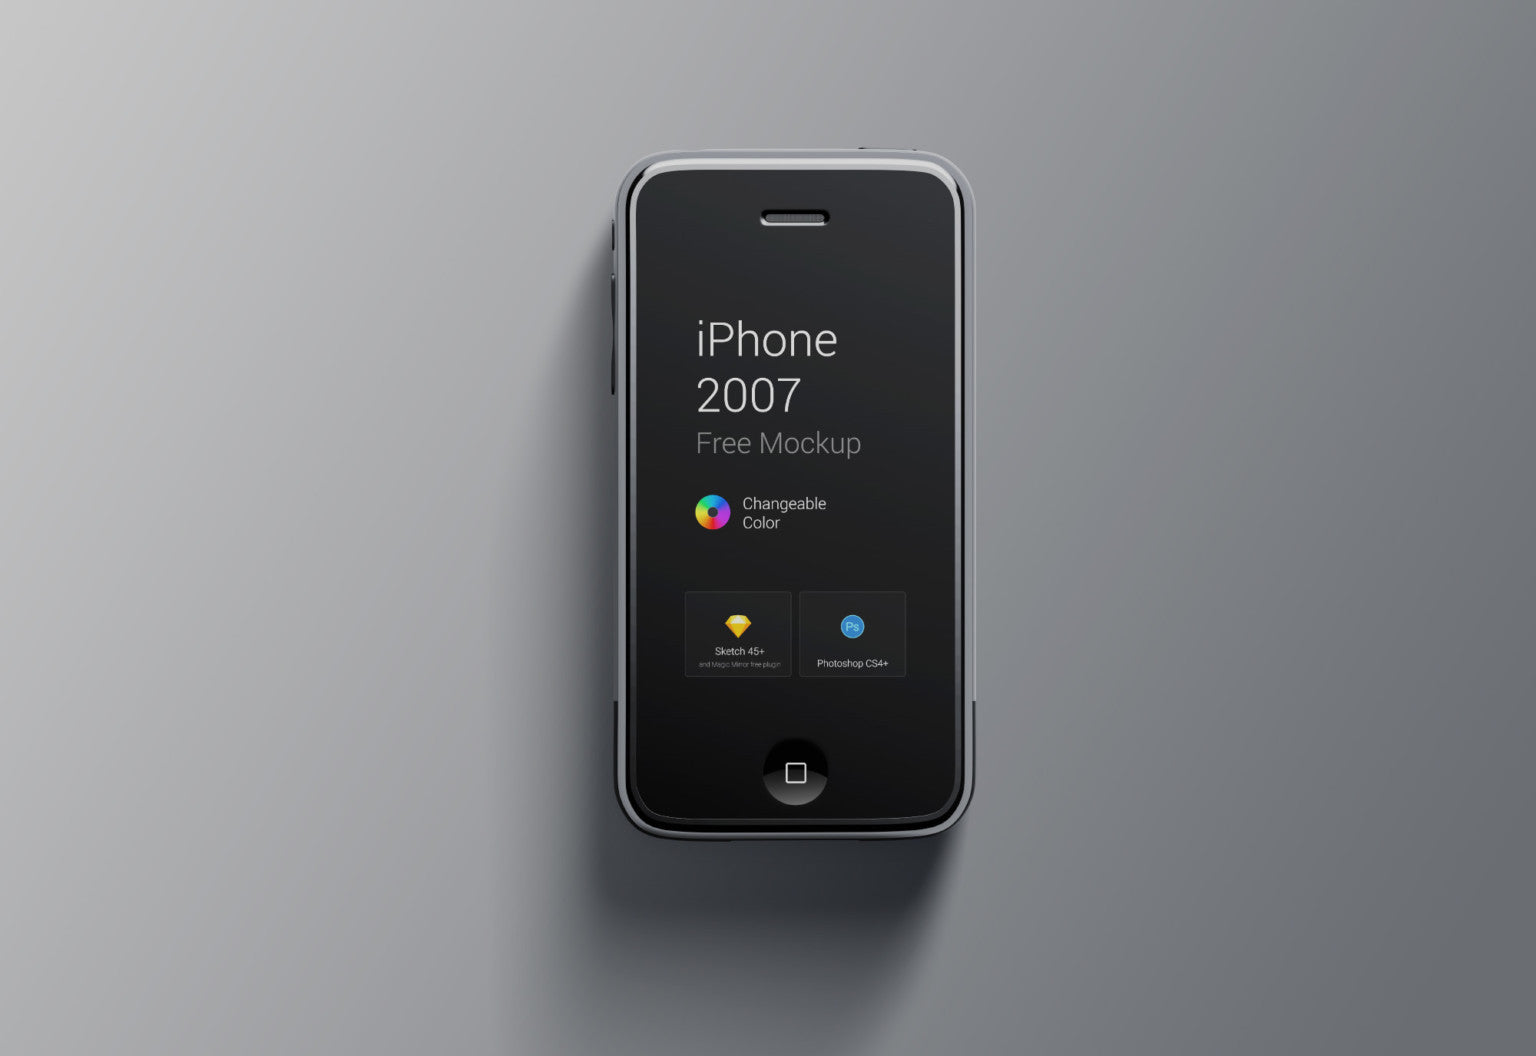 free iphone 1st generation mockup